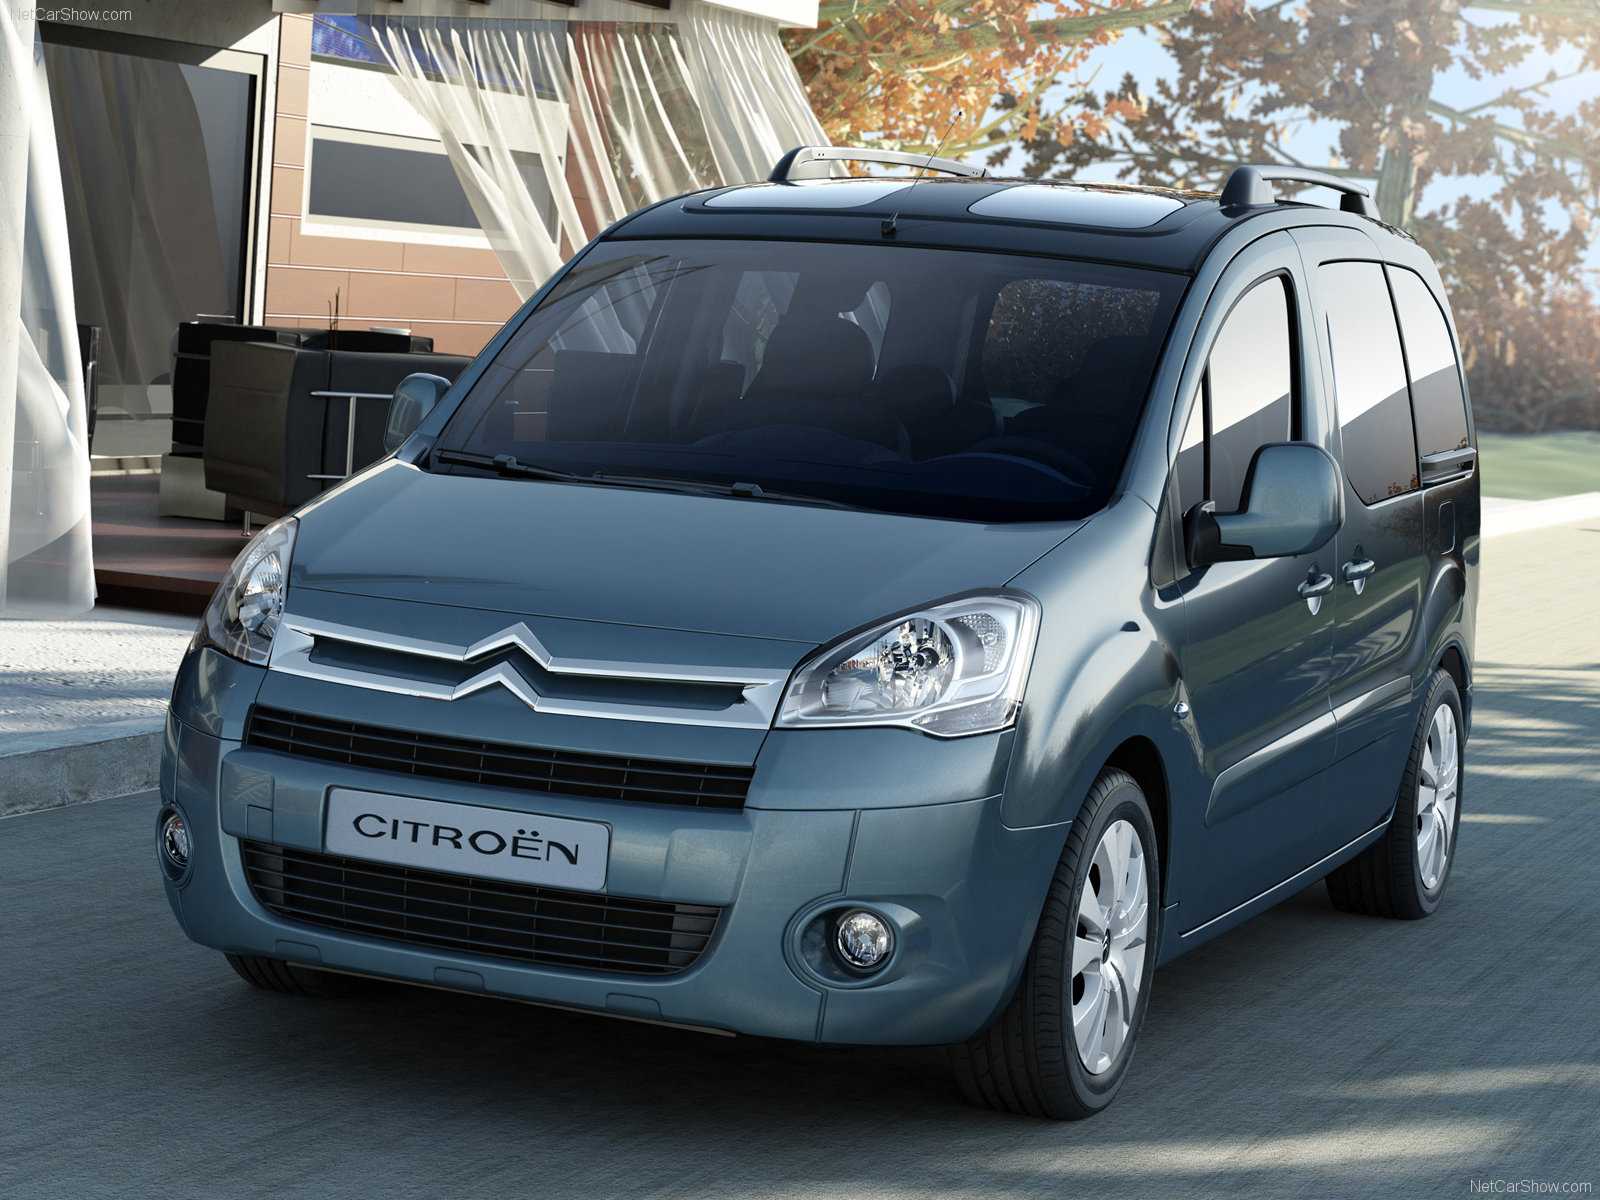 2010 Citroen Berlingo #19